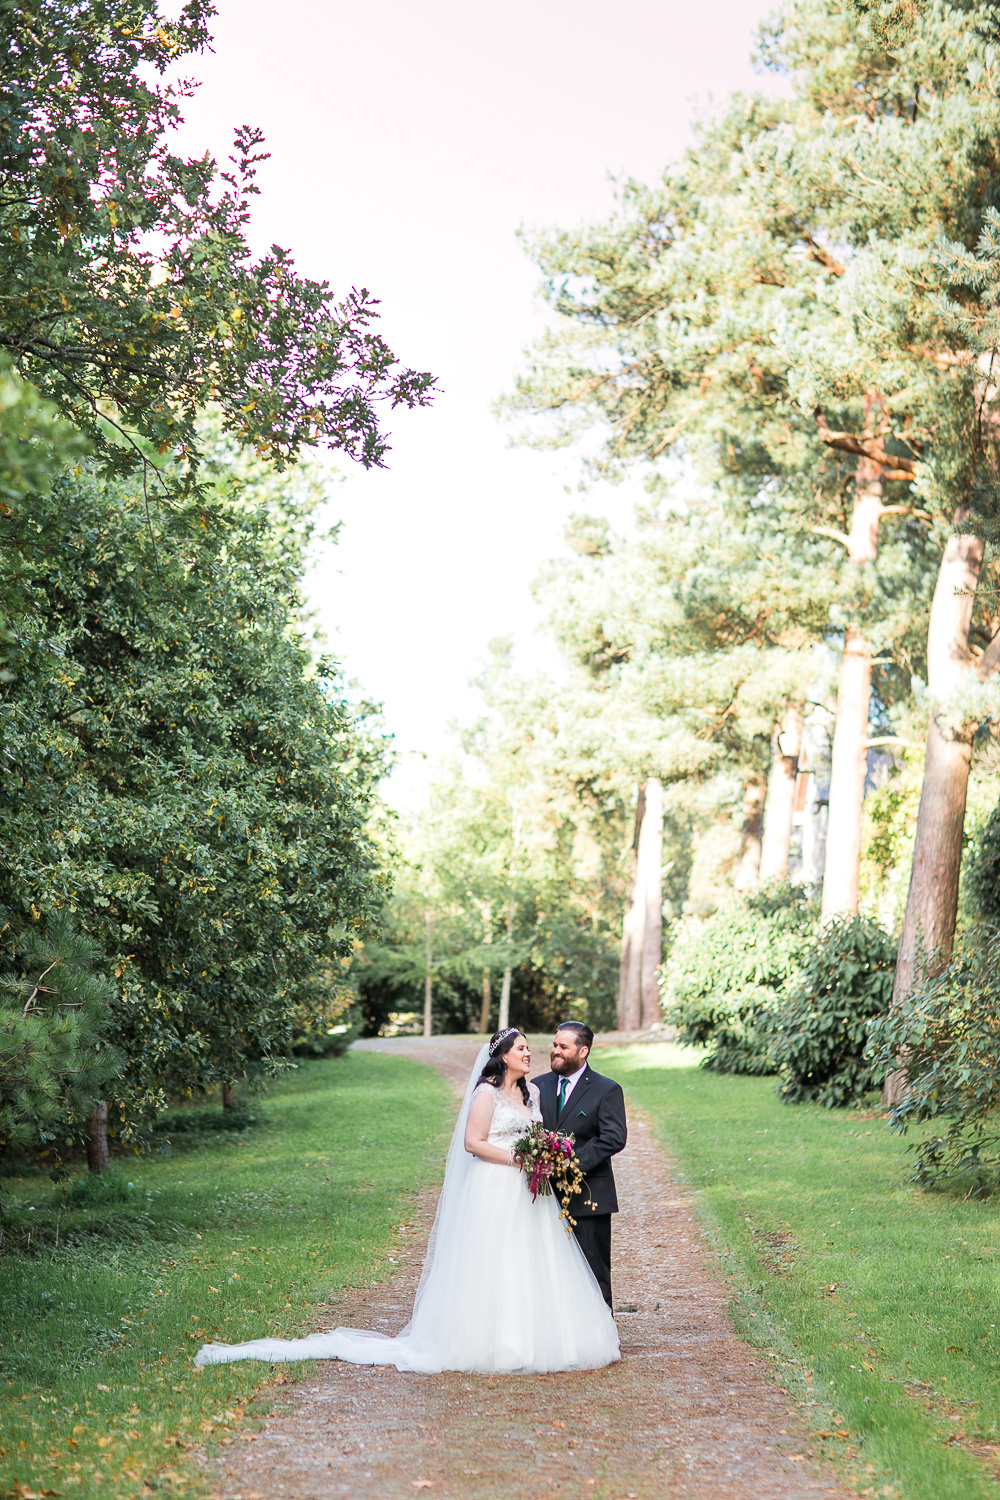 Bride and Groom portraits in a forest surrounding area